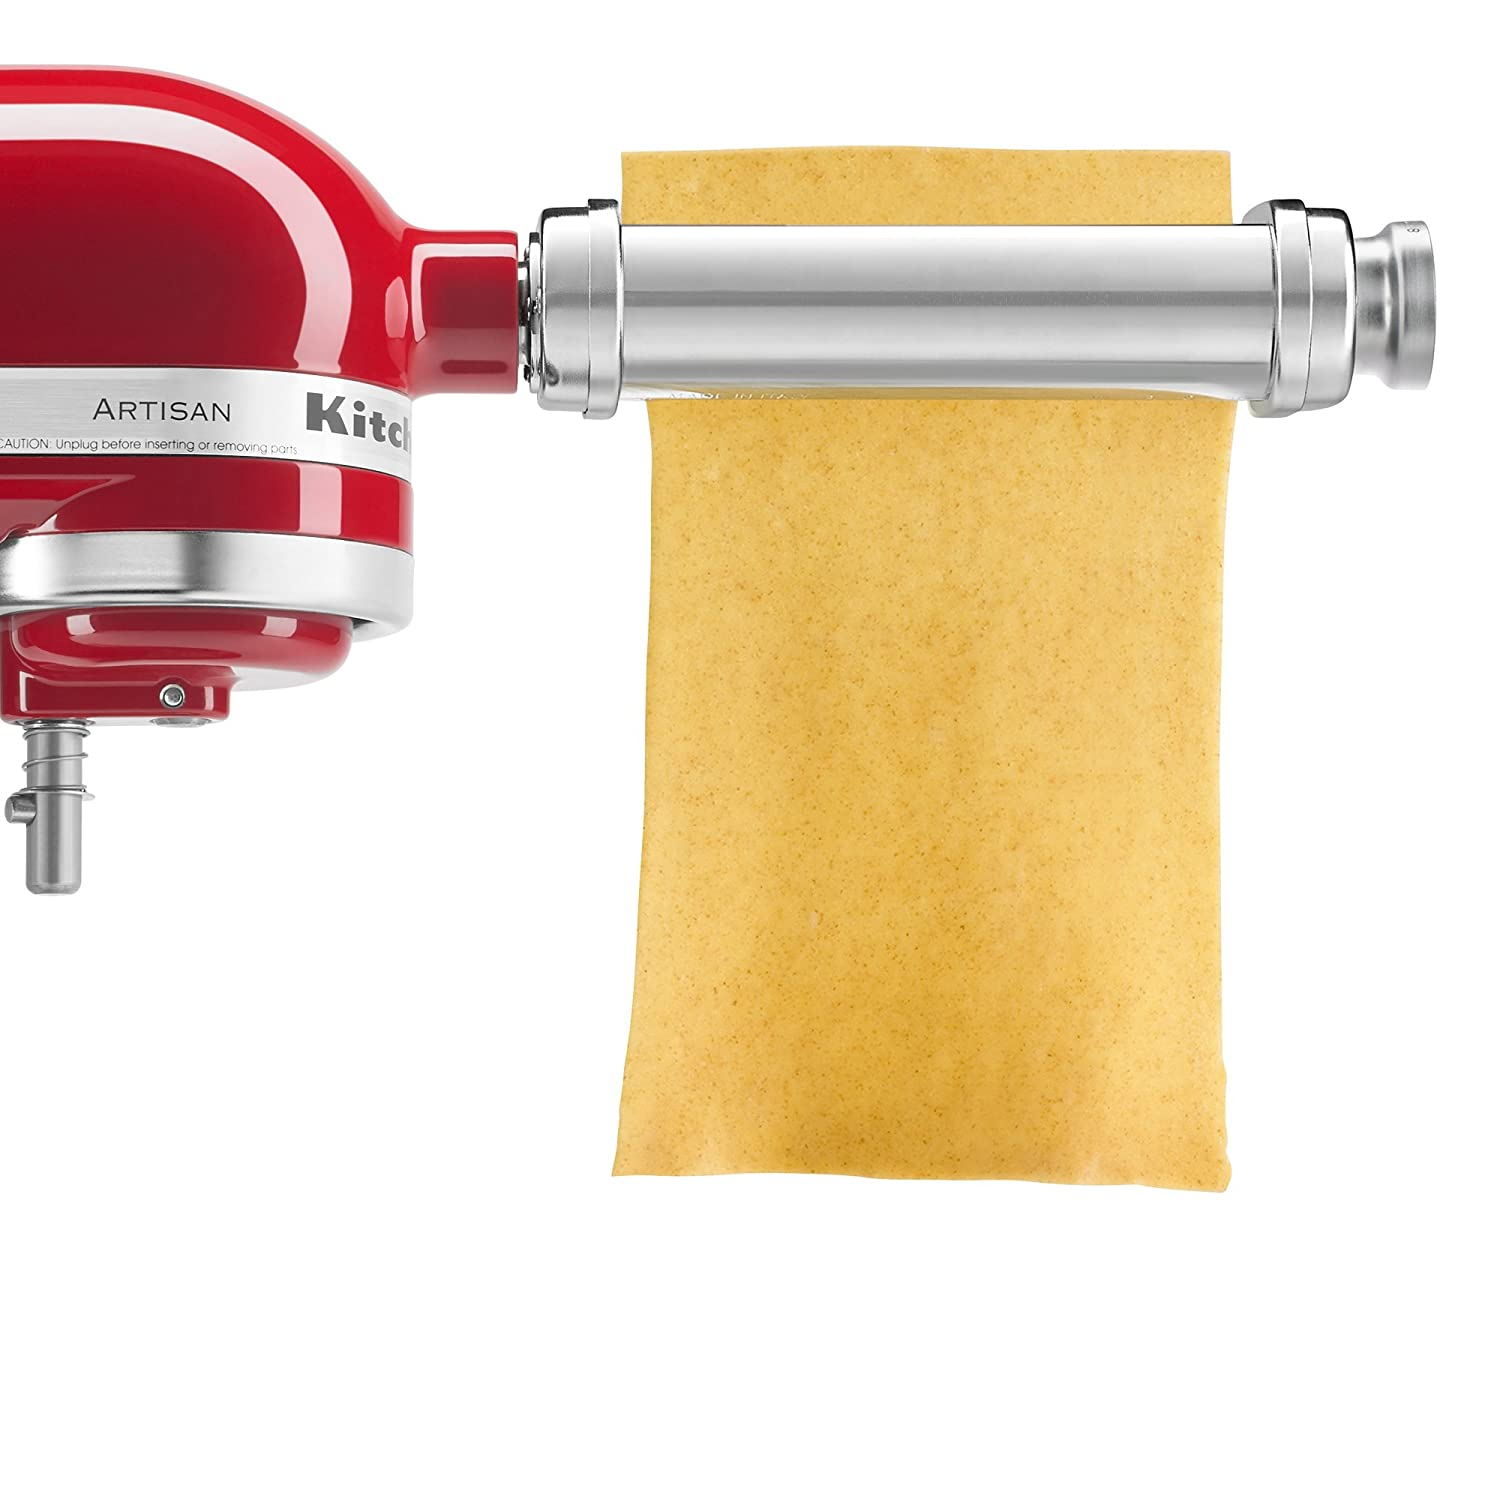 Amazon.com: KitchenAid KSMPRA 3-Piece Pasta Roller & Cutter ...